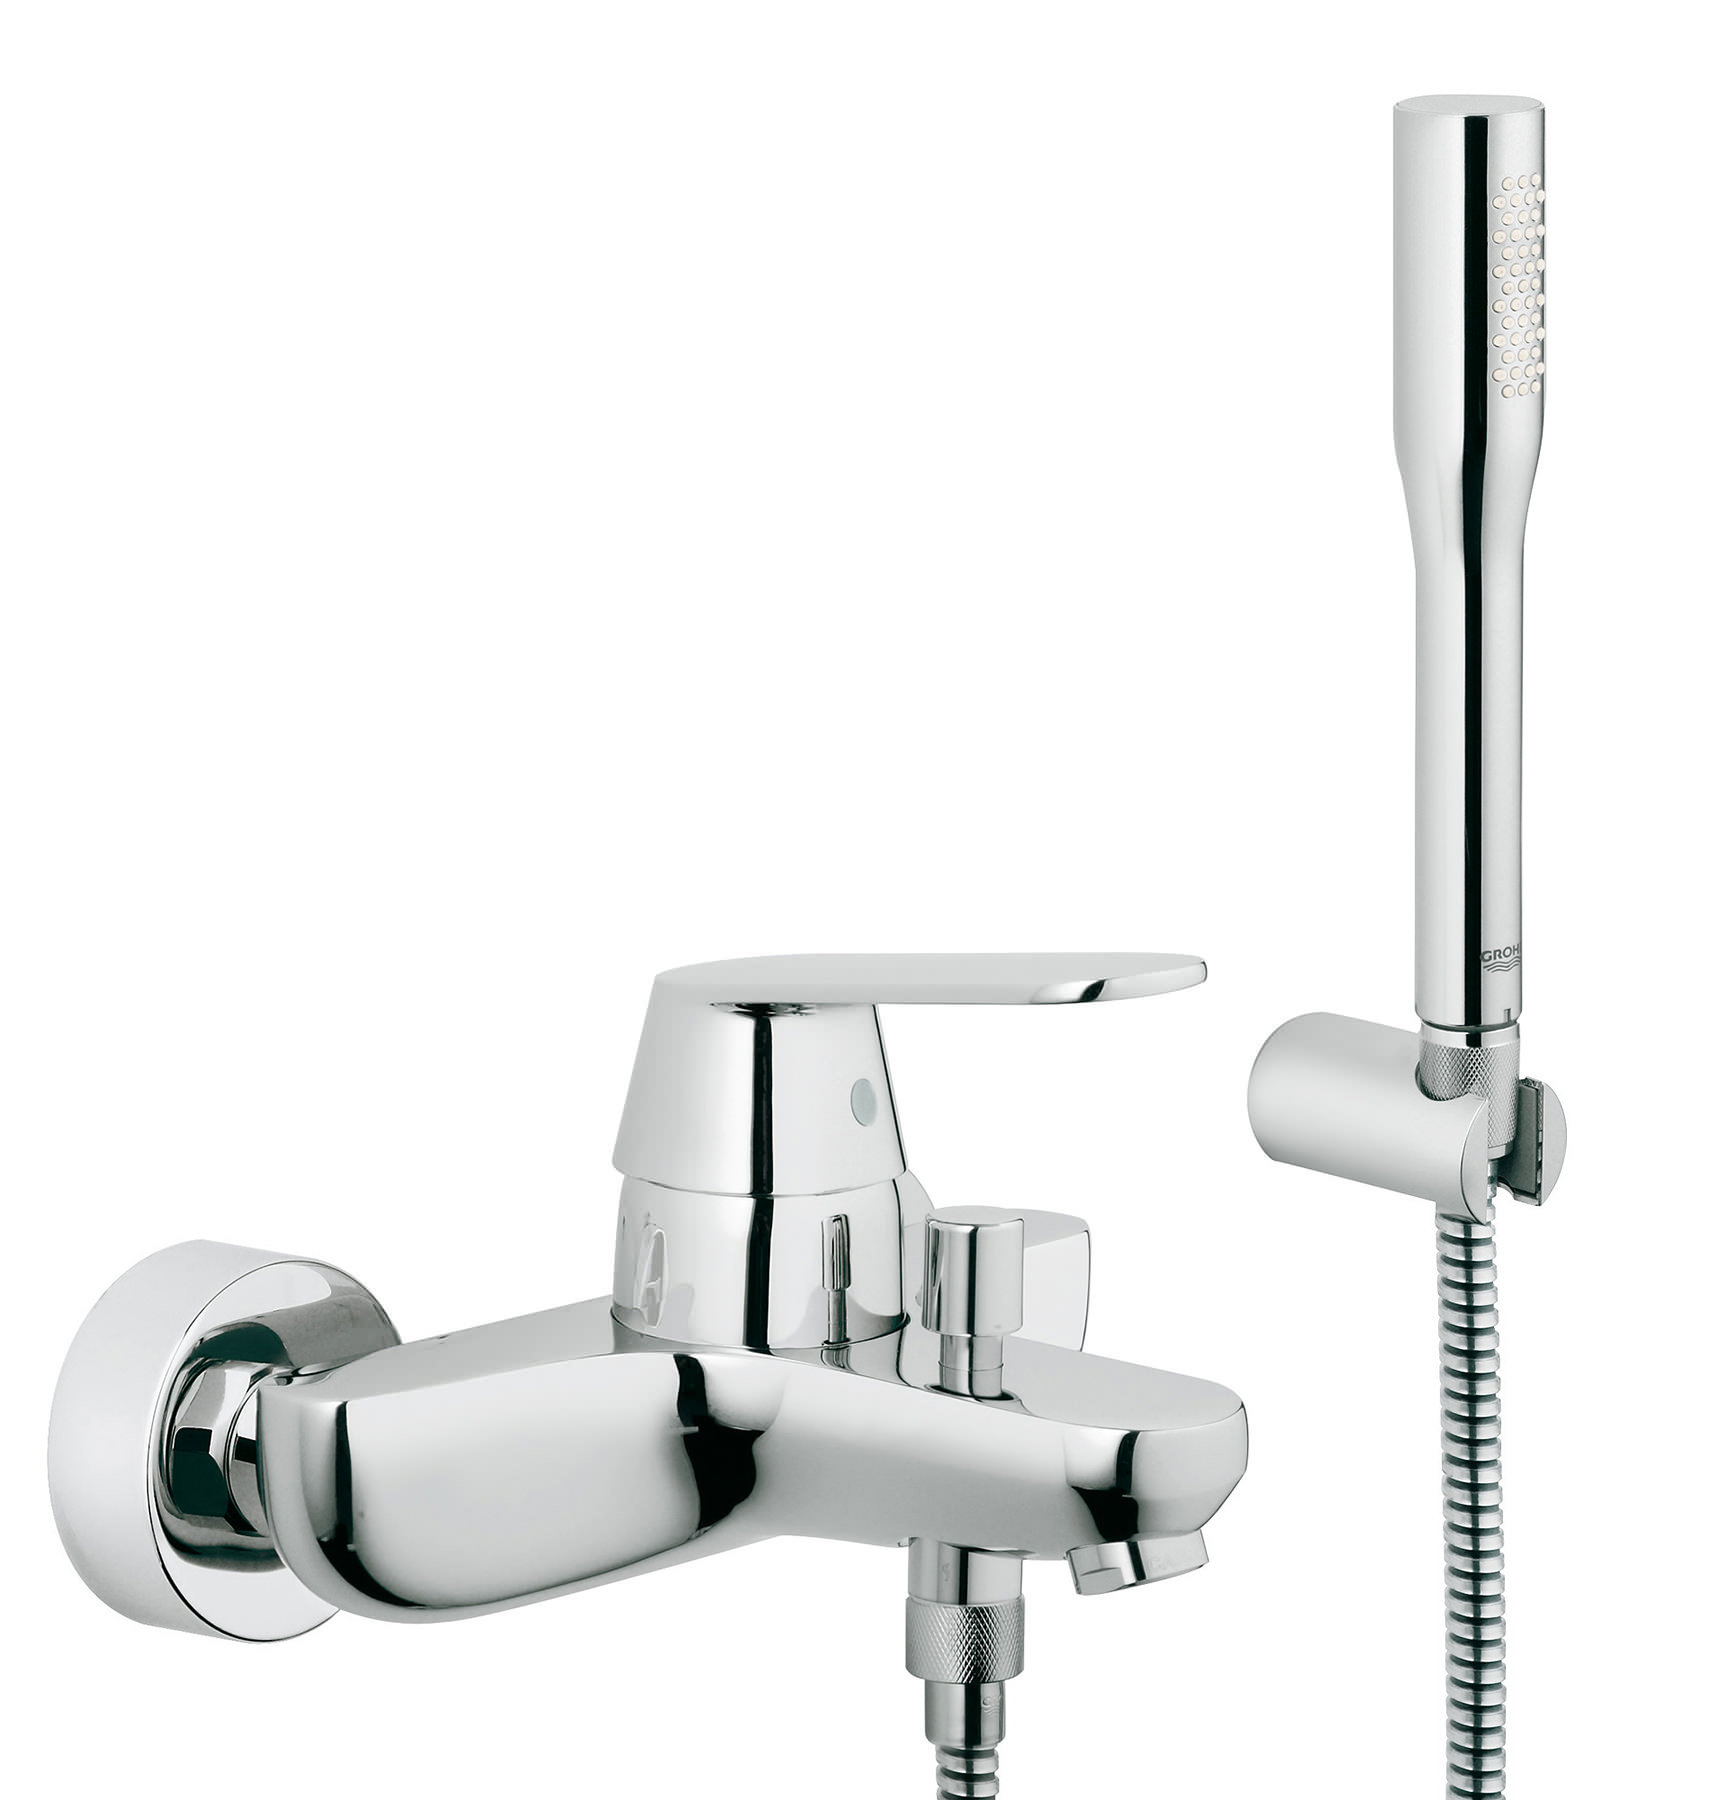 grohe eurosmart cosmo wall mounted bath shower mixer tap with kit 32832000. Black Bedroom Furniture Sets. Home Design Ideas